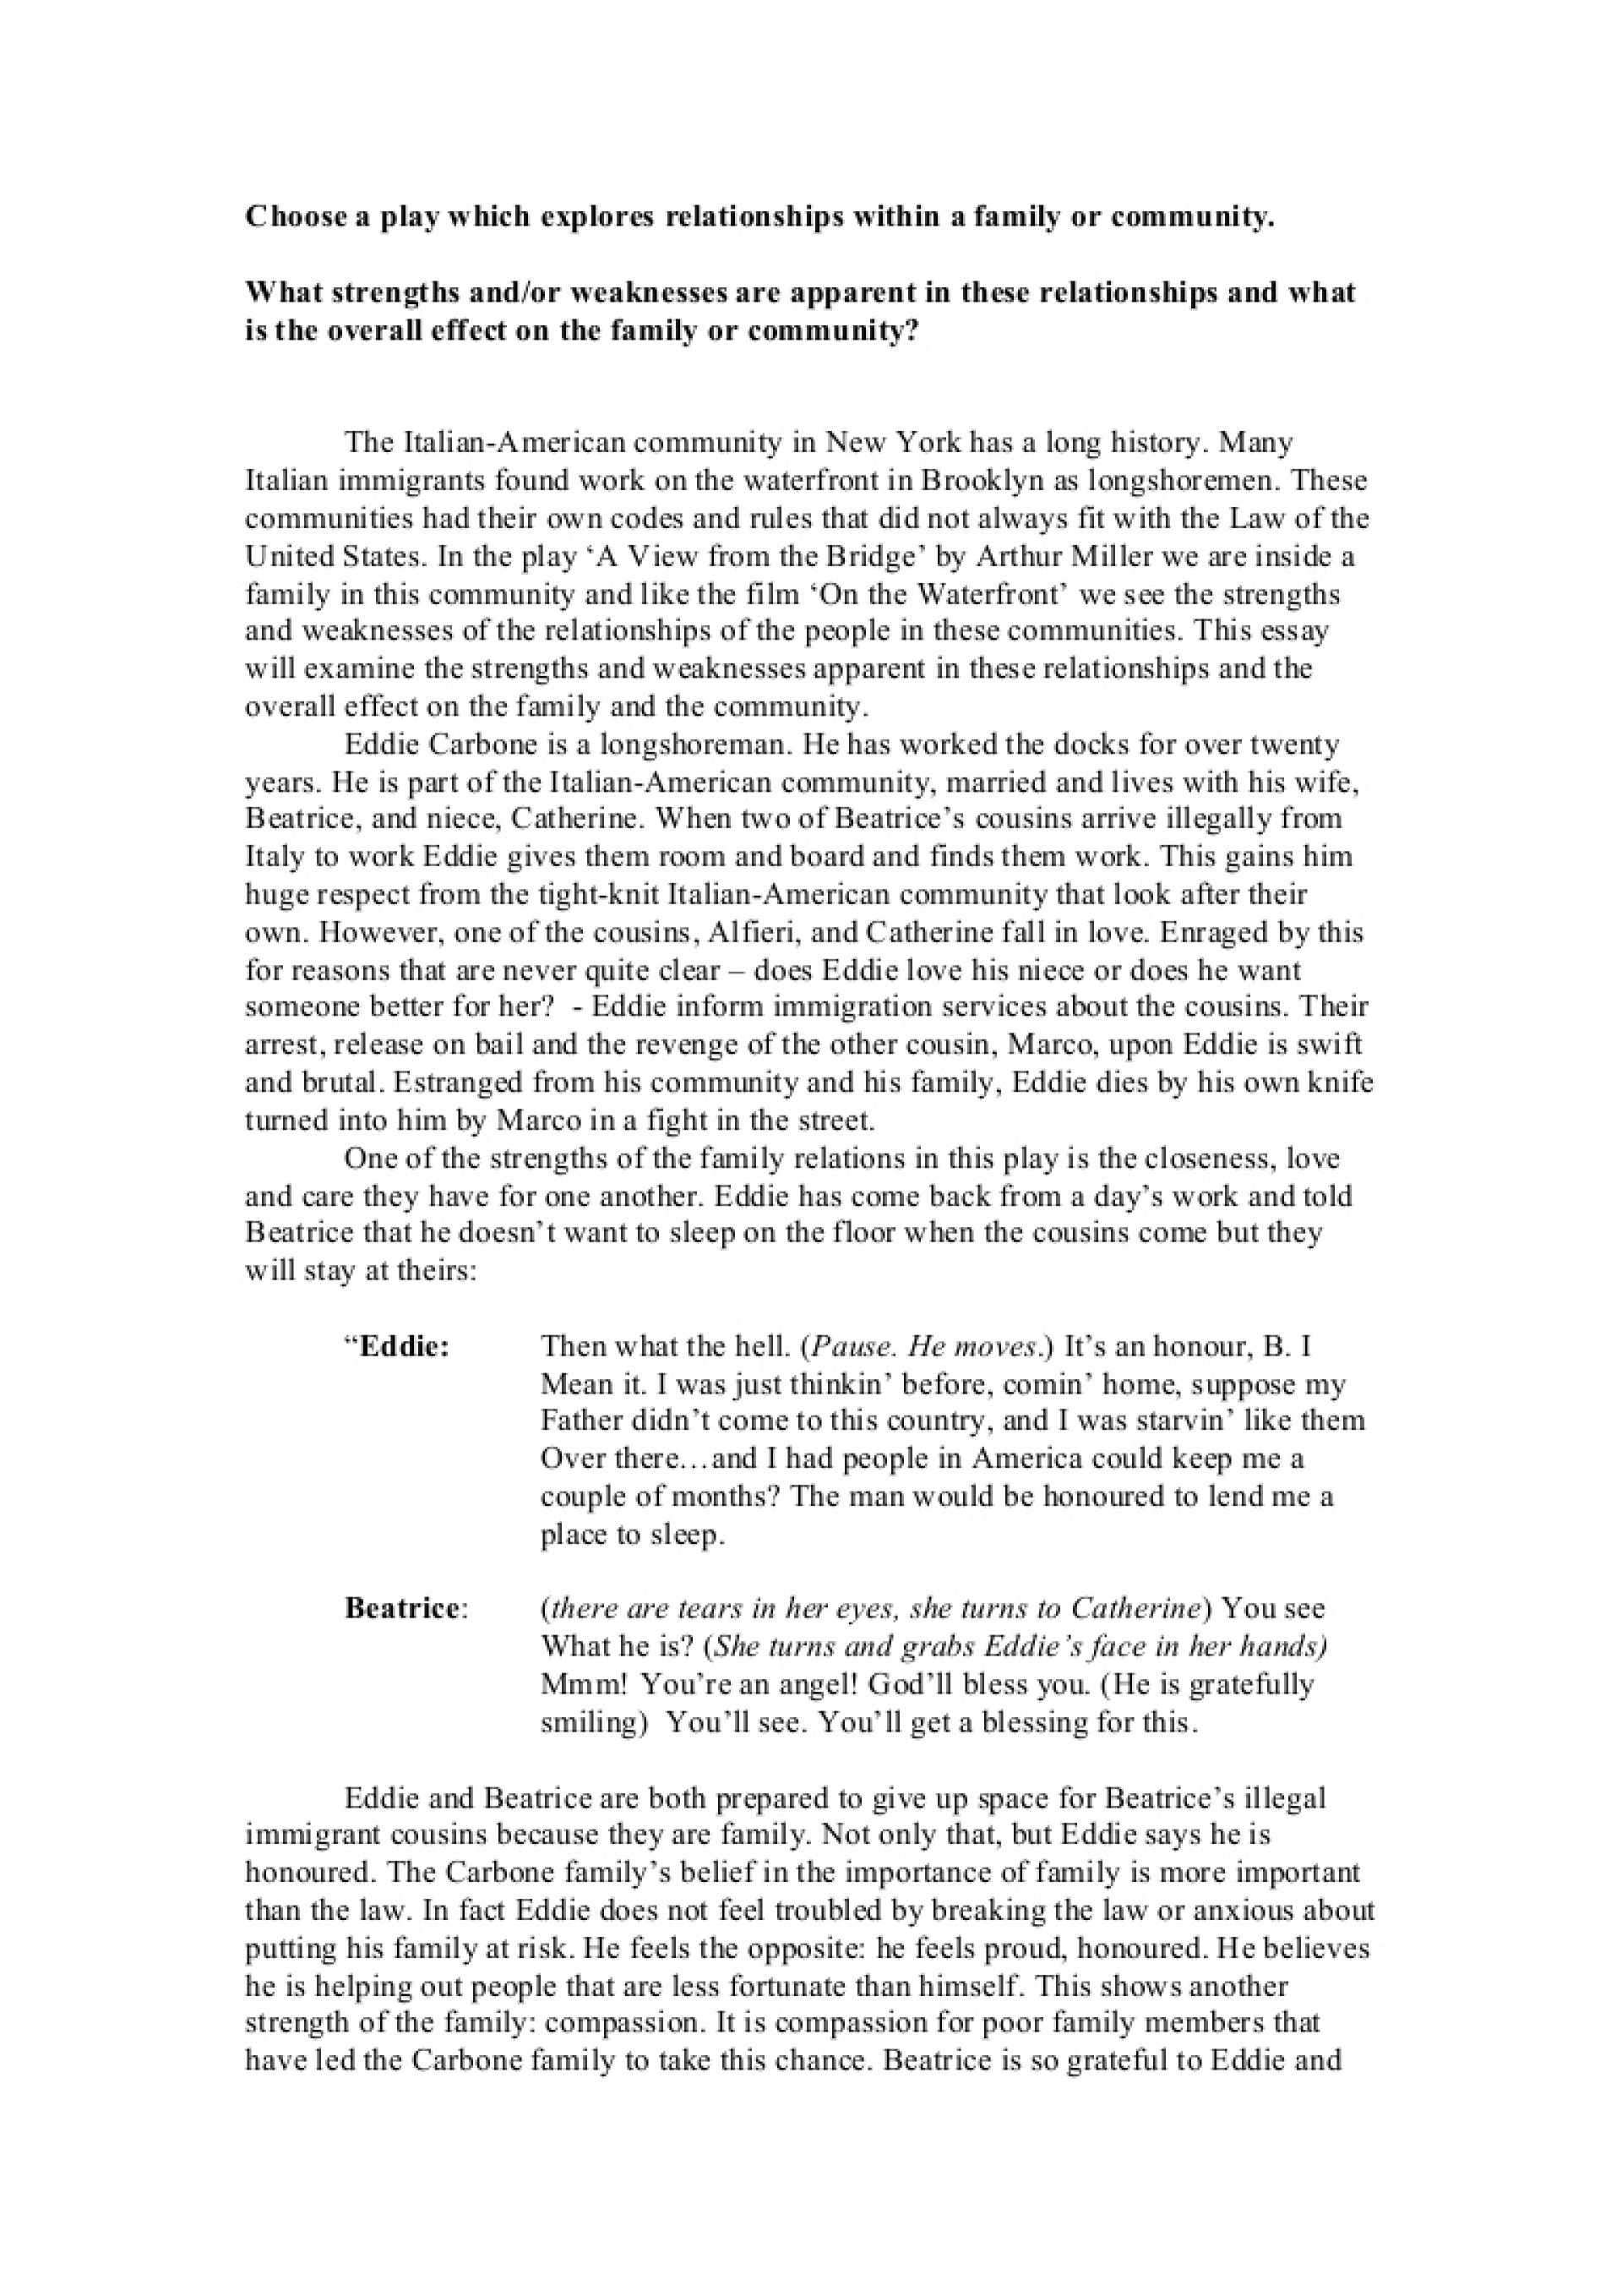 010 Essay Example Pursuasive Examiningthestrengthsandweaknessesinthefamilyandcommunity Phpapp02 Thumbnail Stirring Persuasive Structure Topics For Middle School About Music 1920